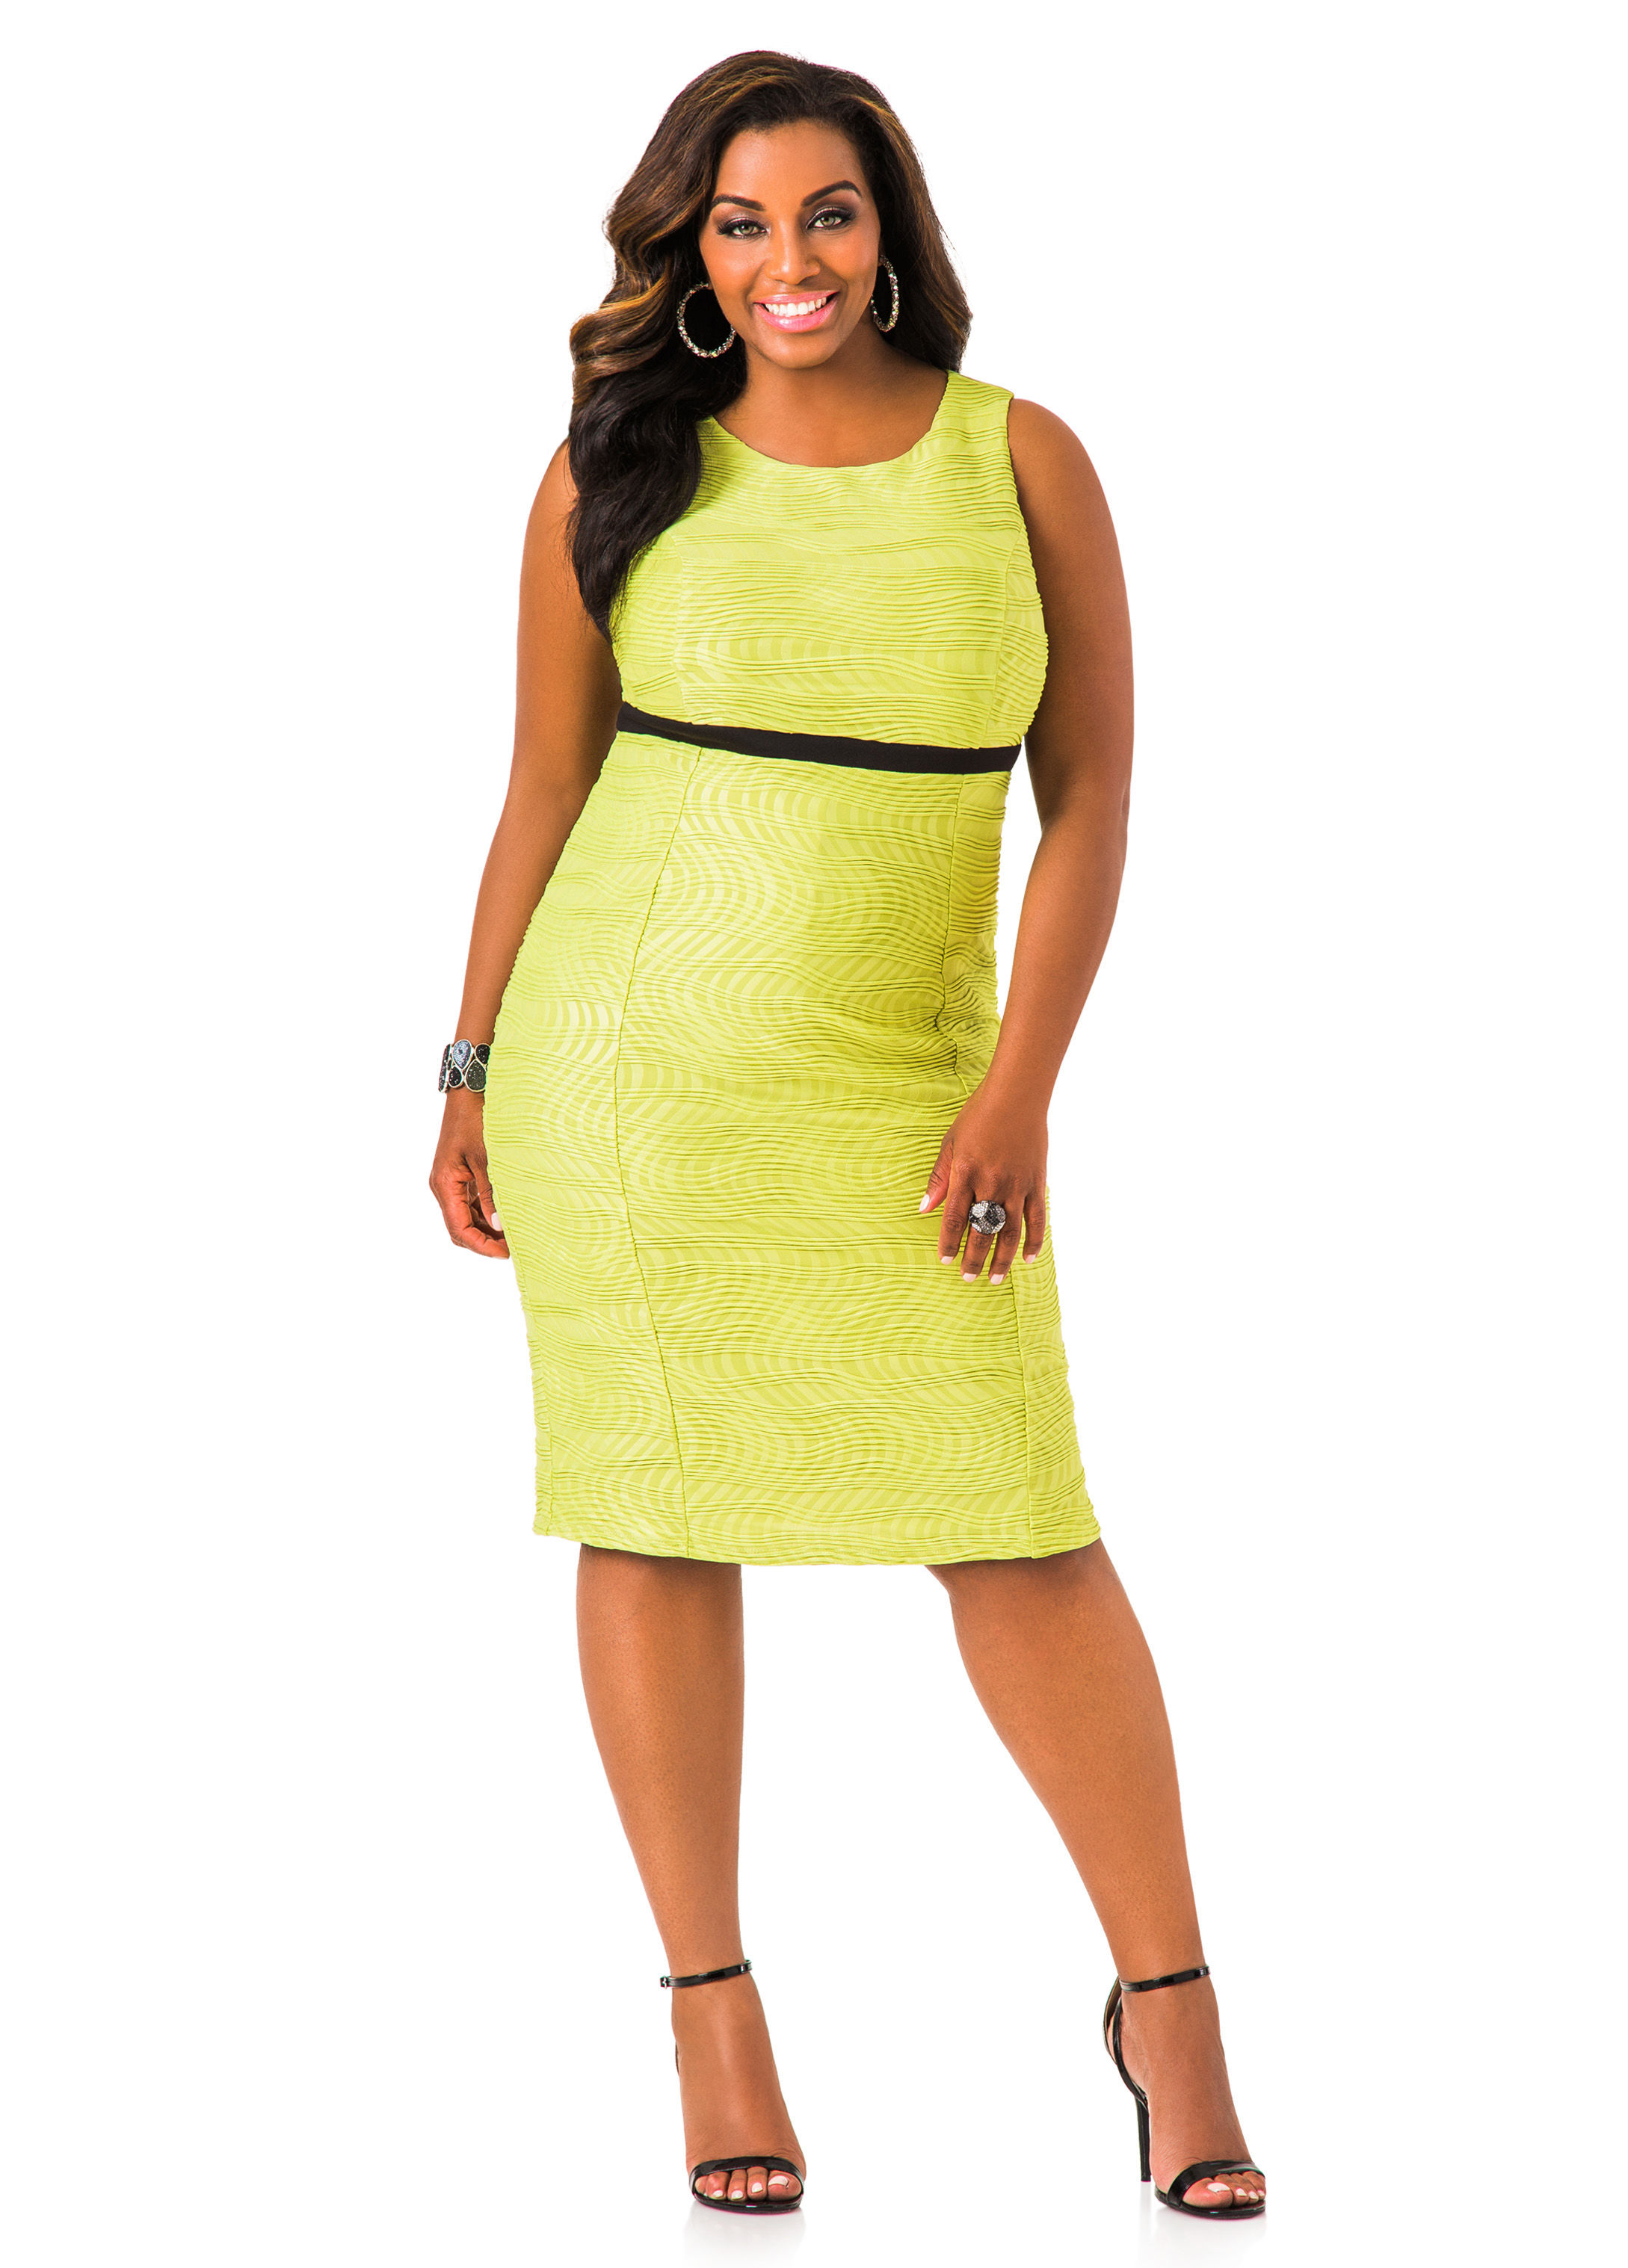 Plus Size Cute Clothes For Derby plus size dresses is your